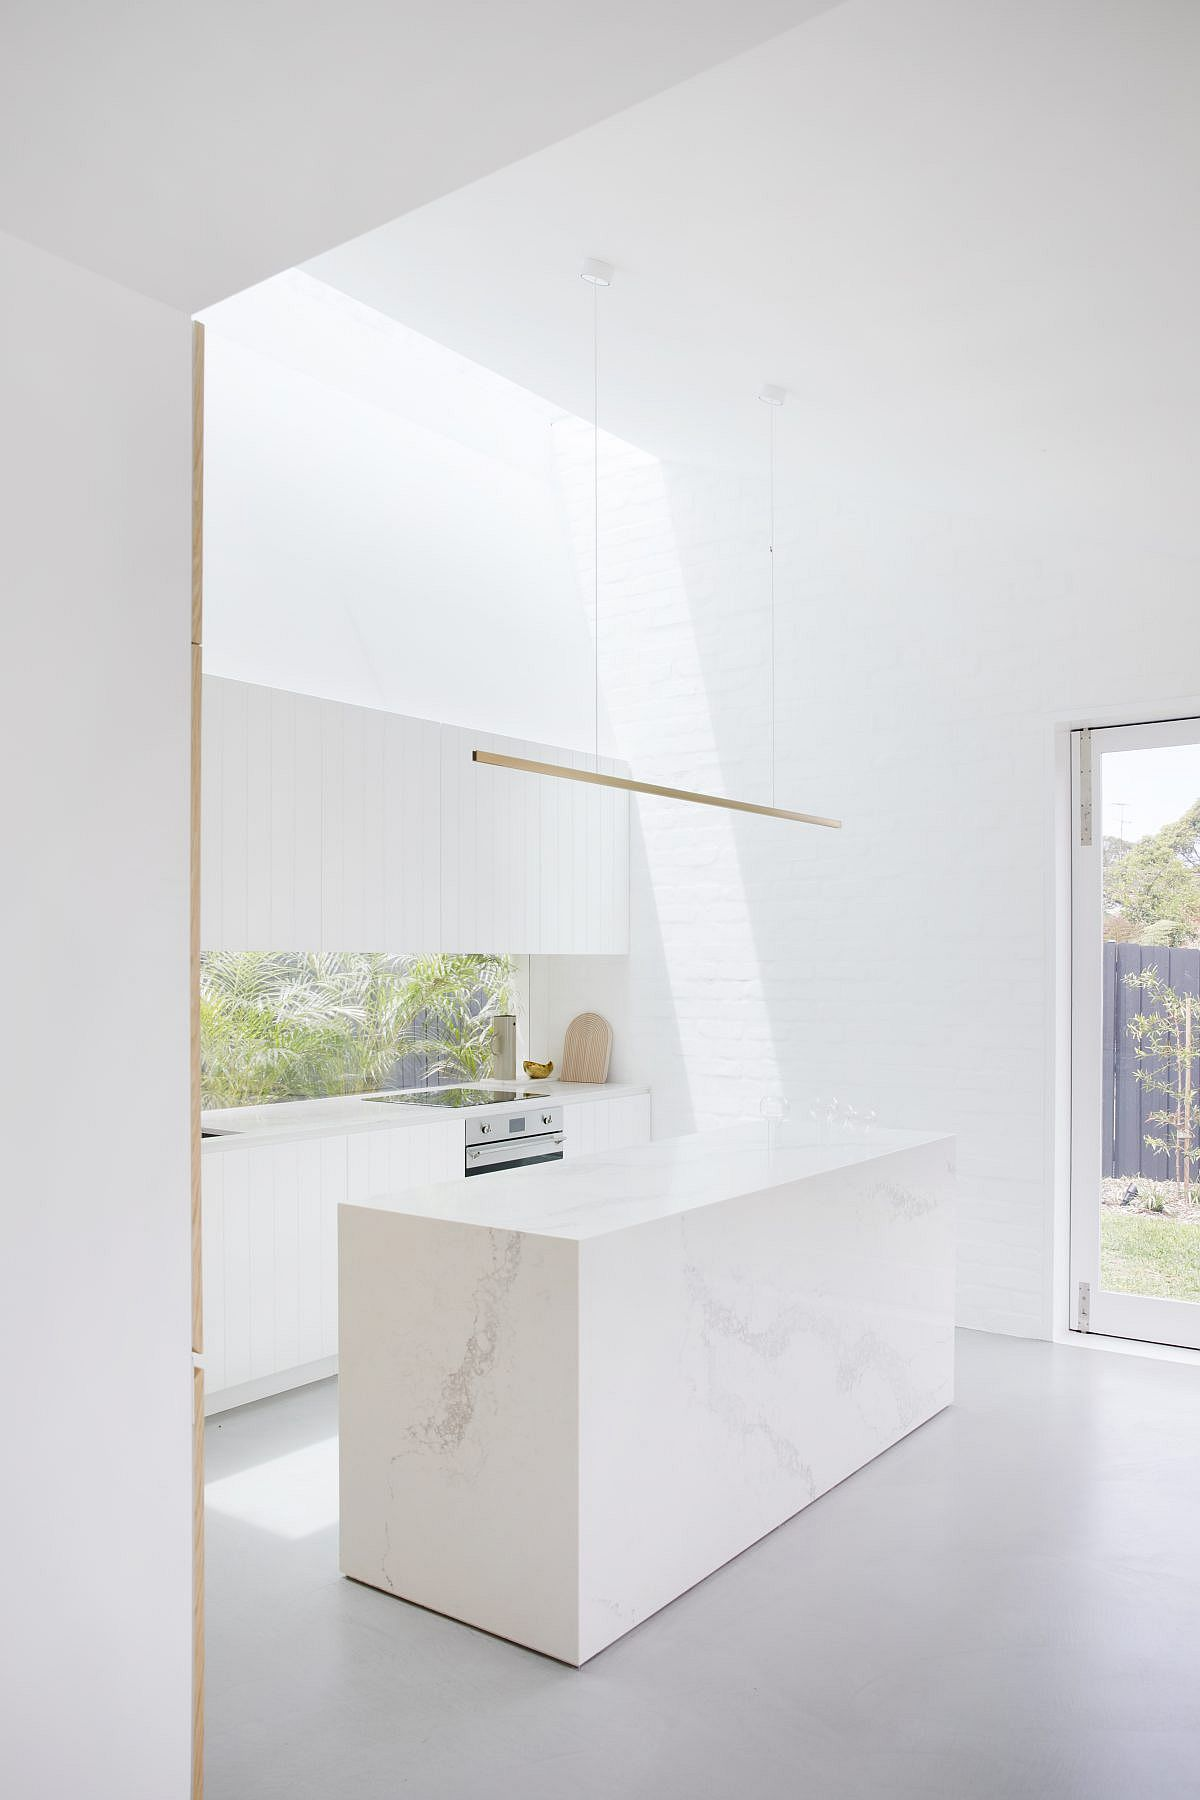 Exquisite-contemporary-kitchen-in-white-with-painted-brick-walls-and-an-island-in-marble-85337